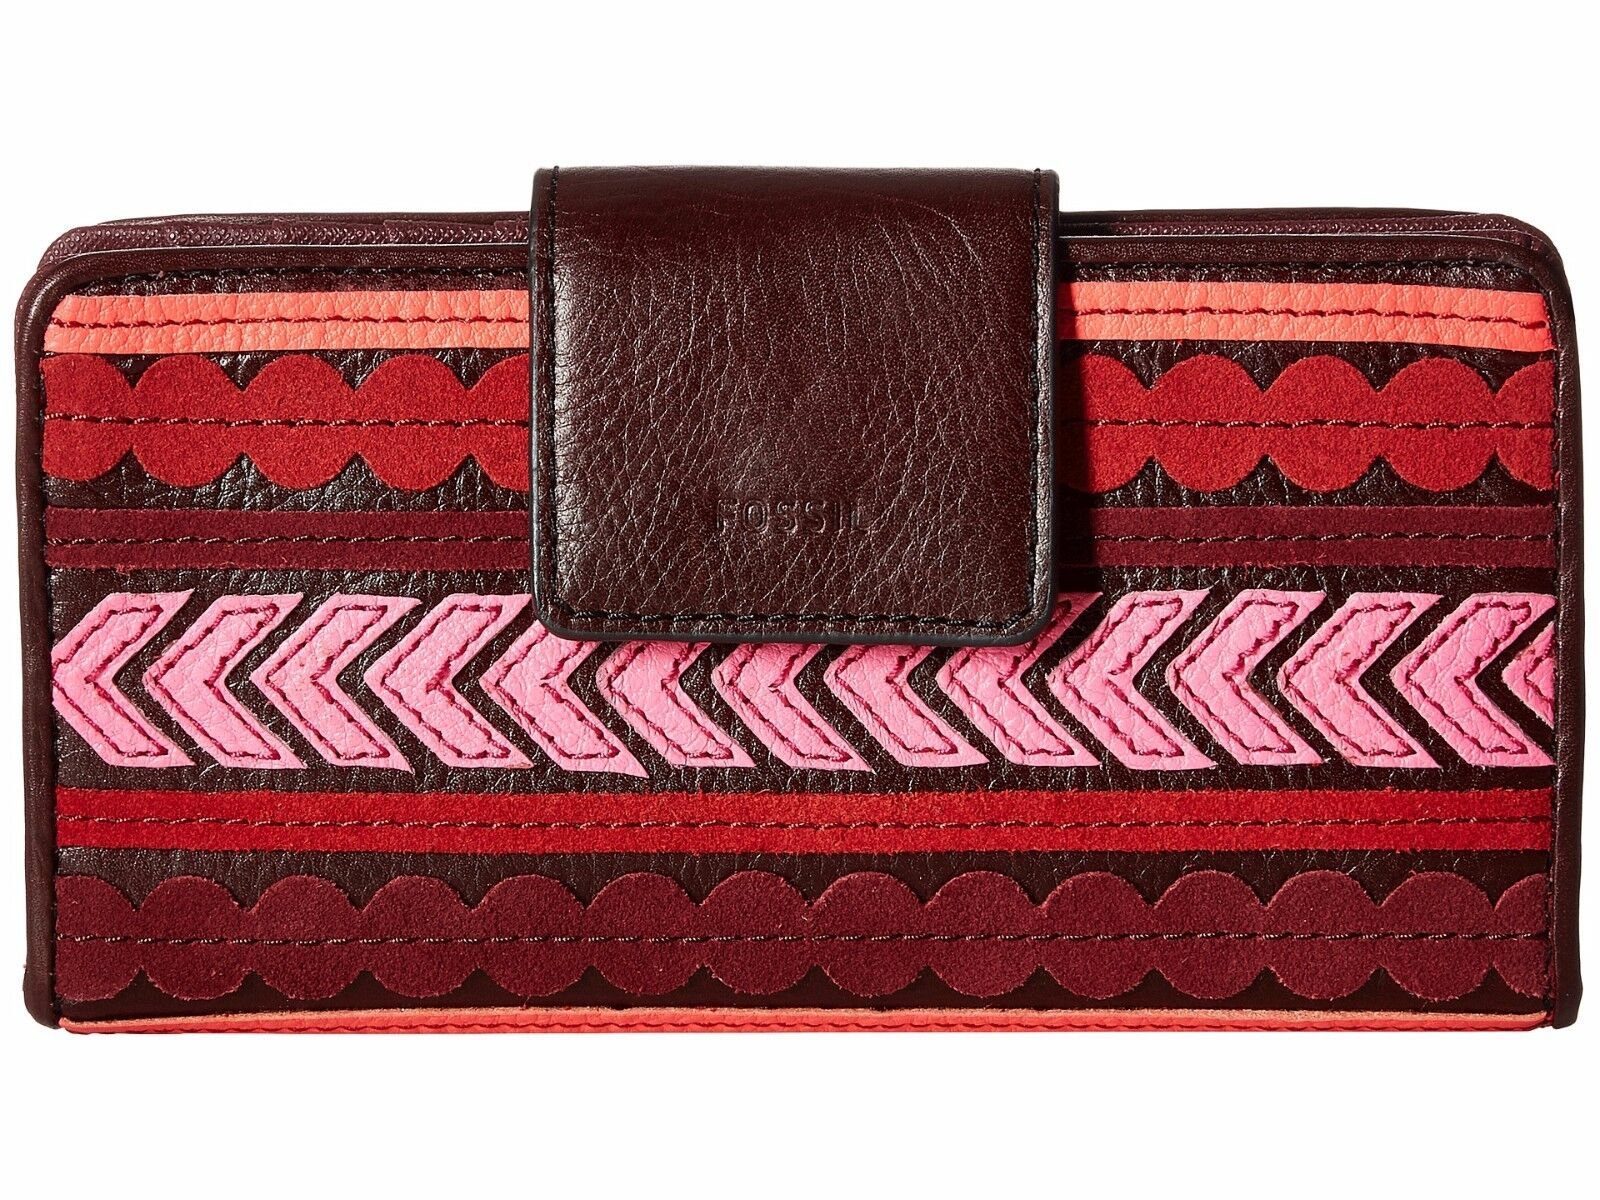 New Fossil Women's Emma Tab RFID Leather Clutch Wallet Variety Colors